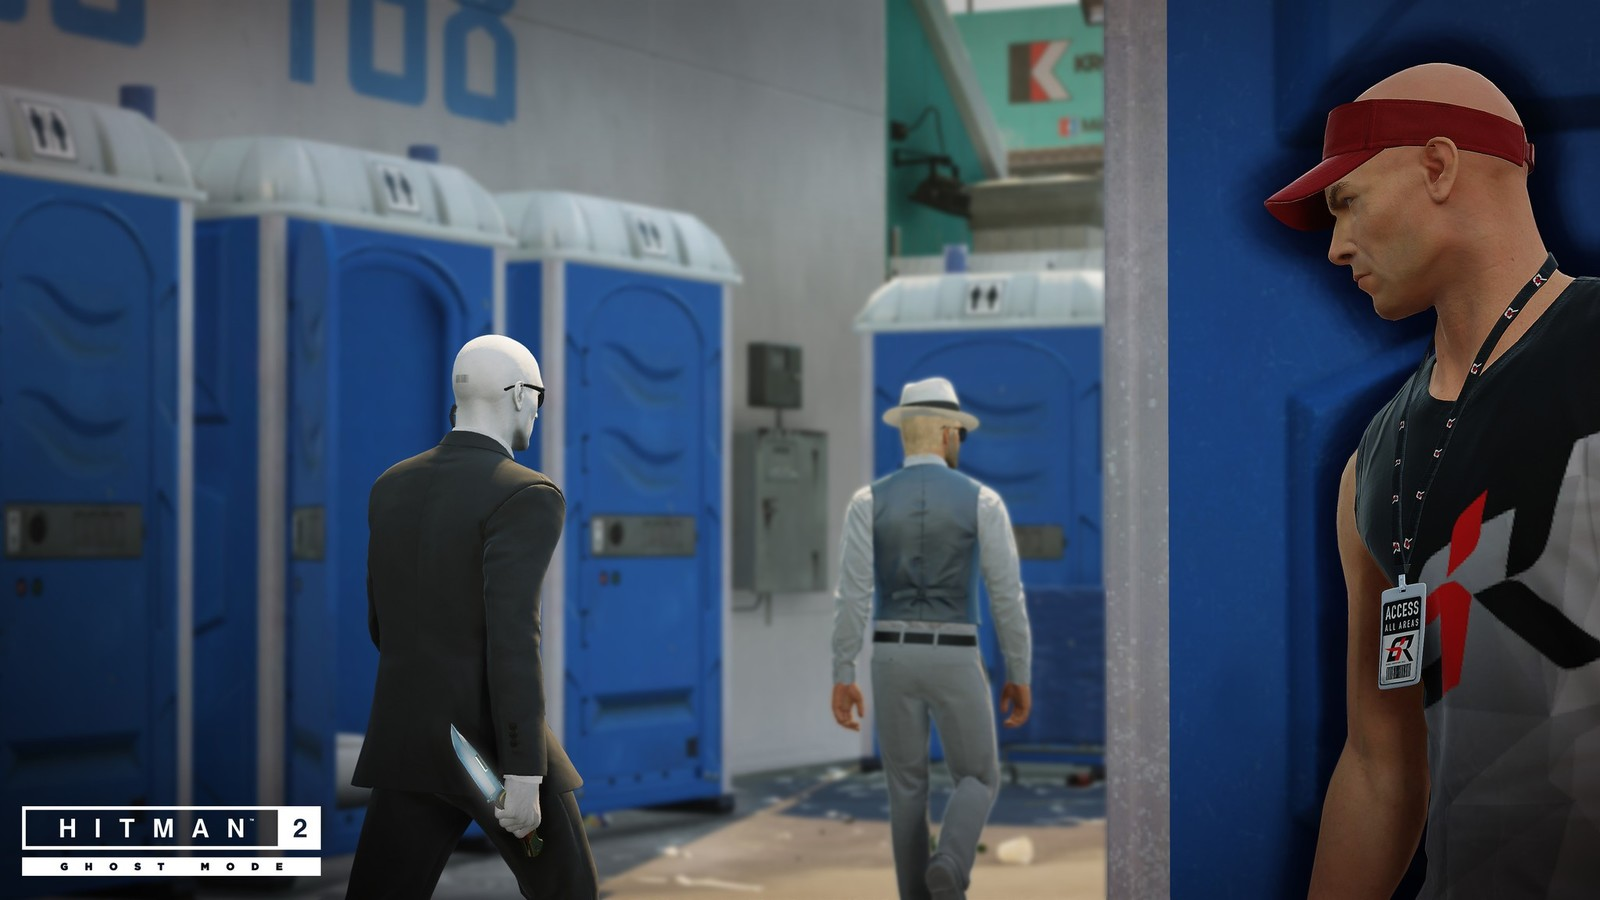 Hitman 2 will have a new competitive 1v1